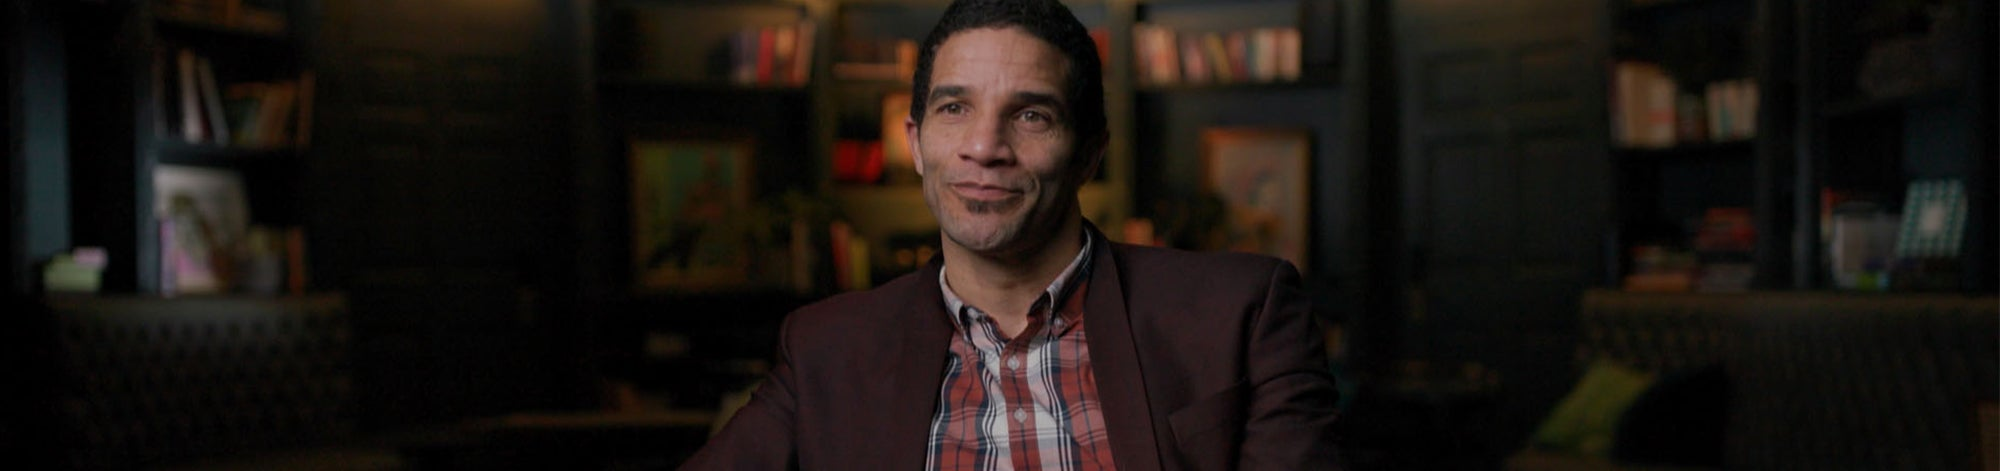 David James on Fever Pitch for the BBC - Copyright StoryFilms